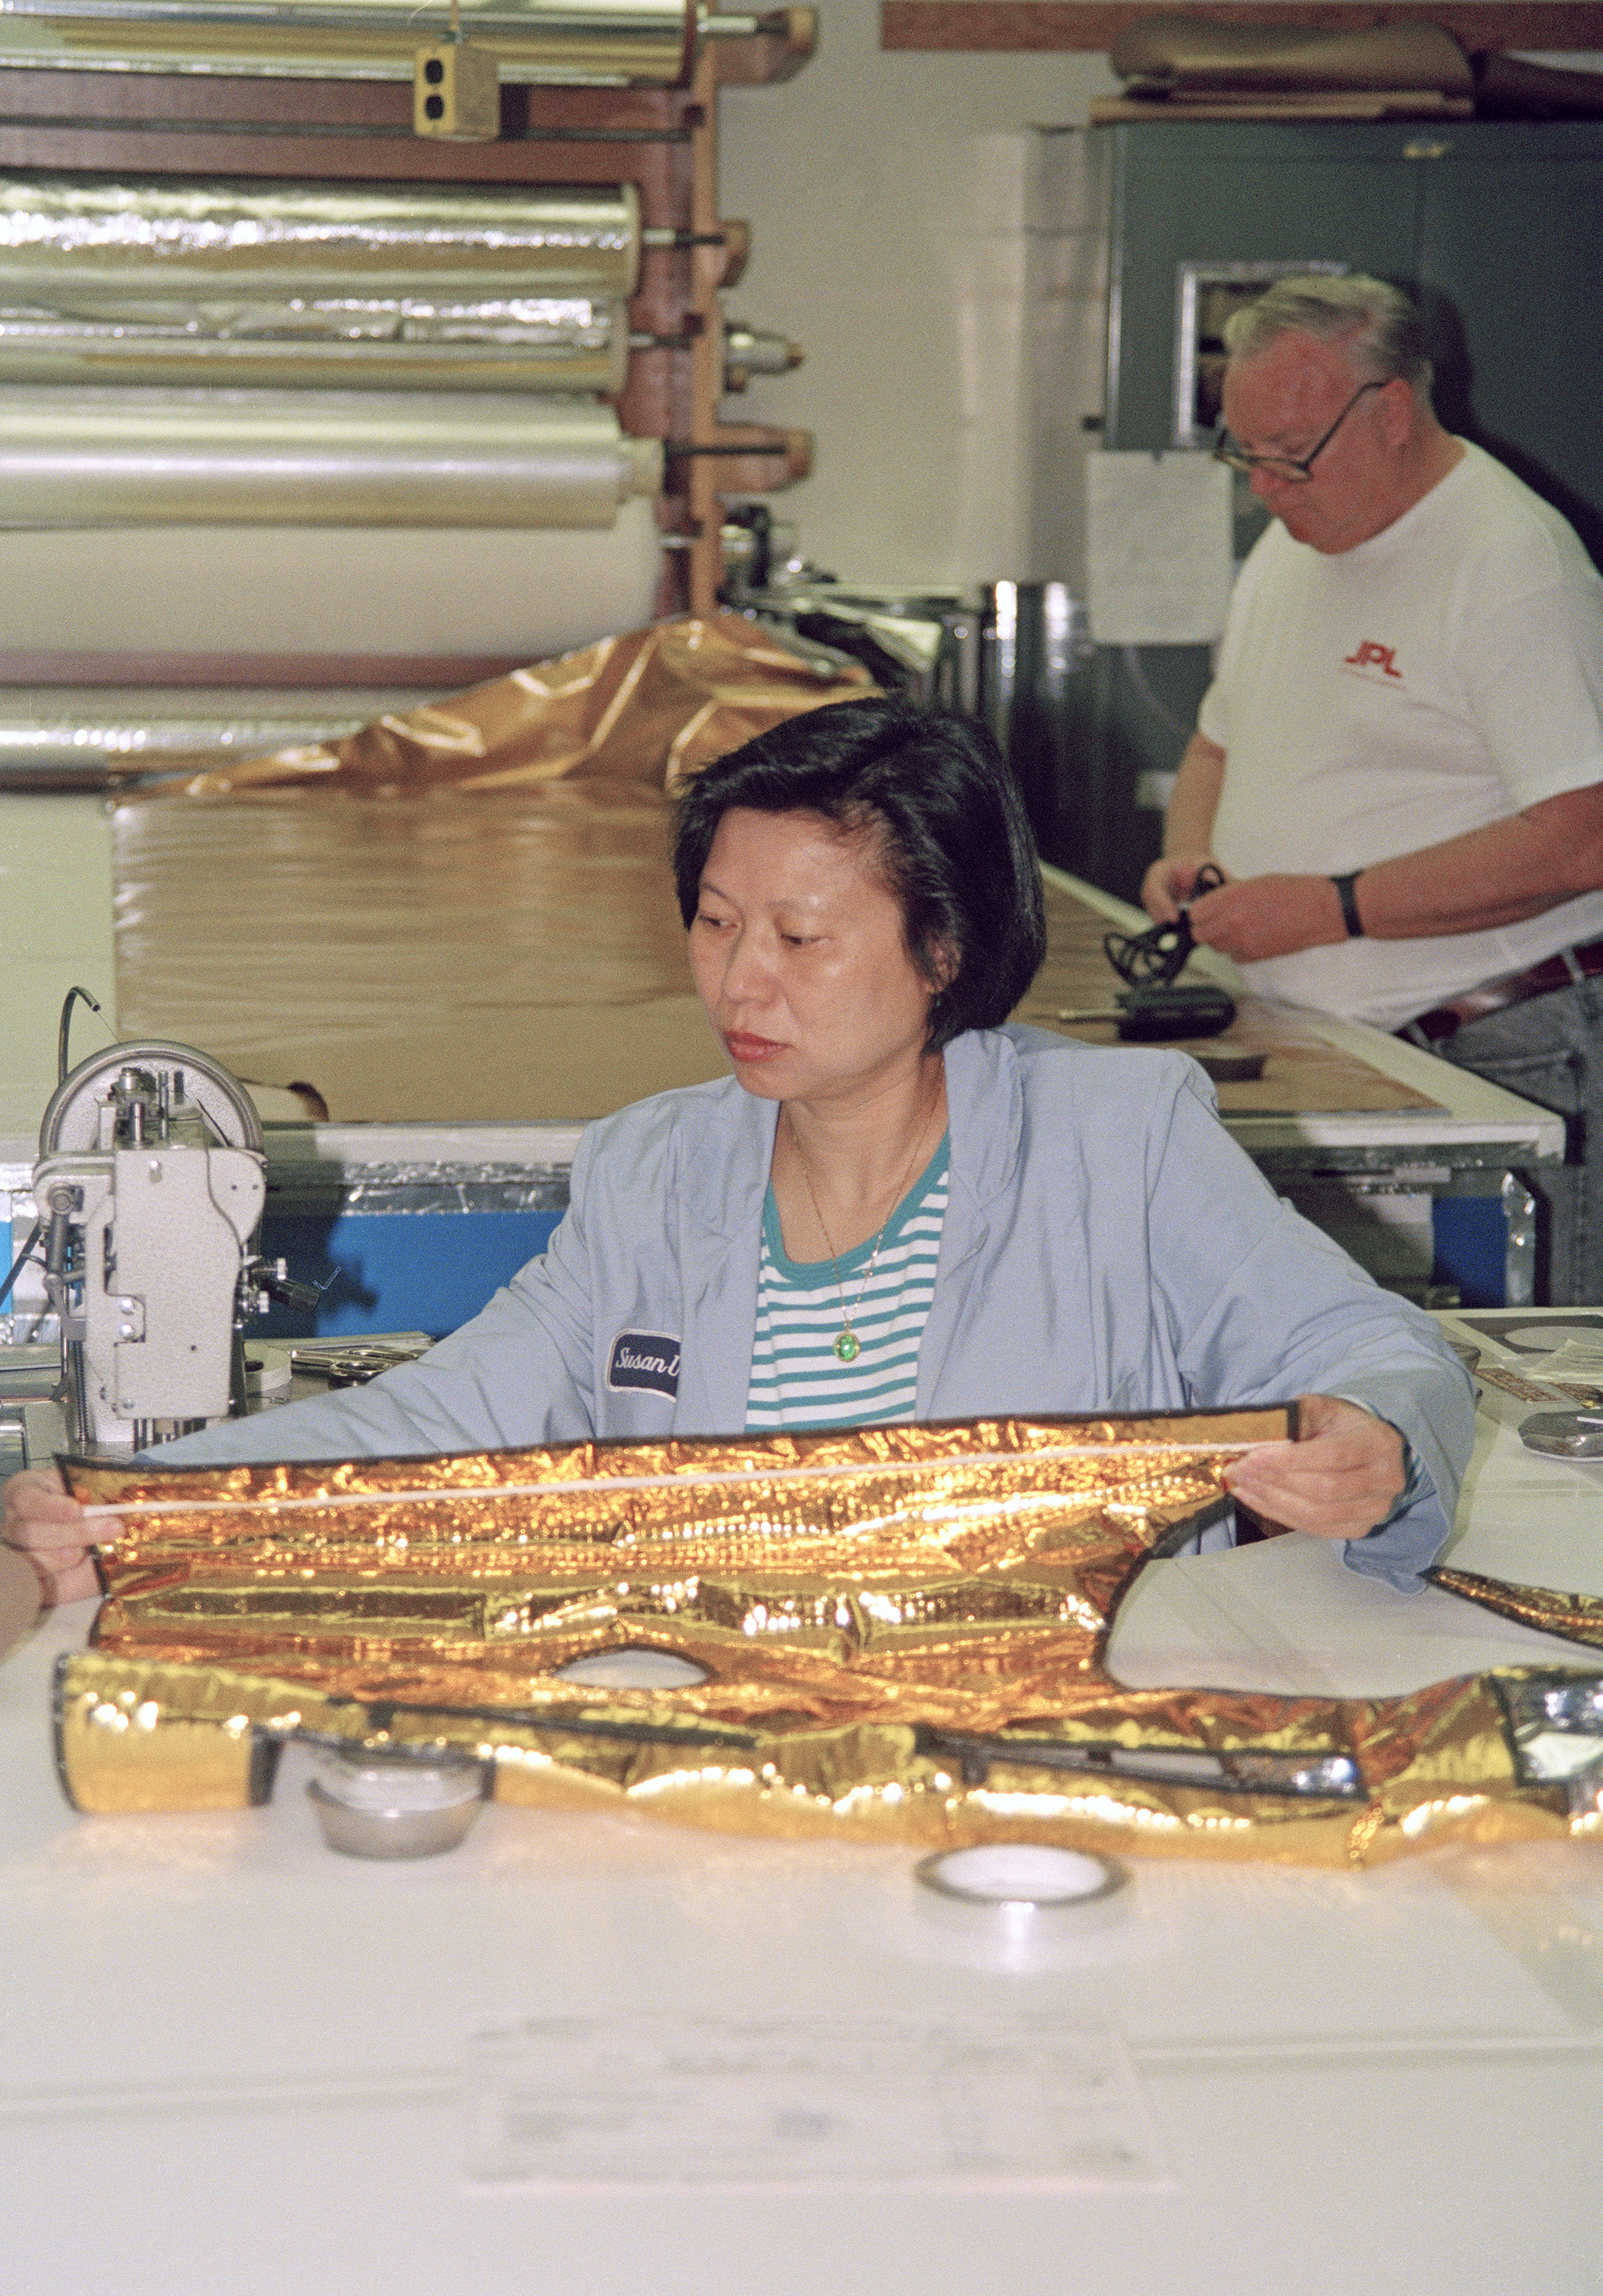 Color image of woman sewing a gold-colored thermal spacecraft blanket.